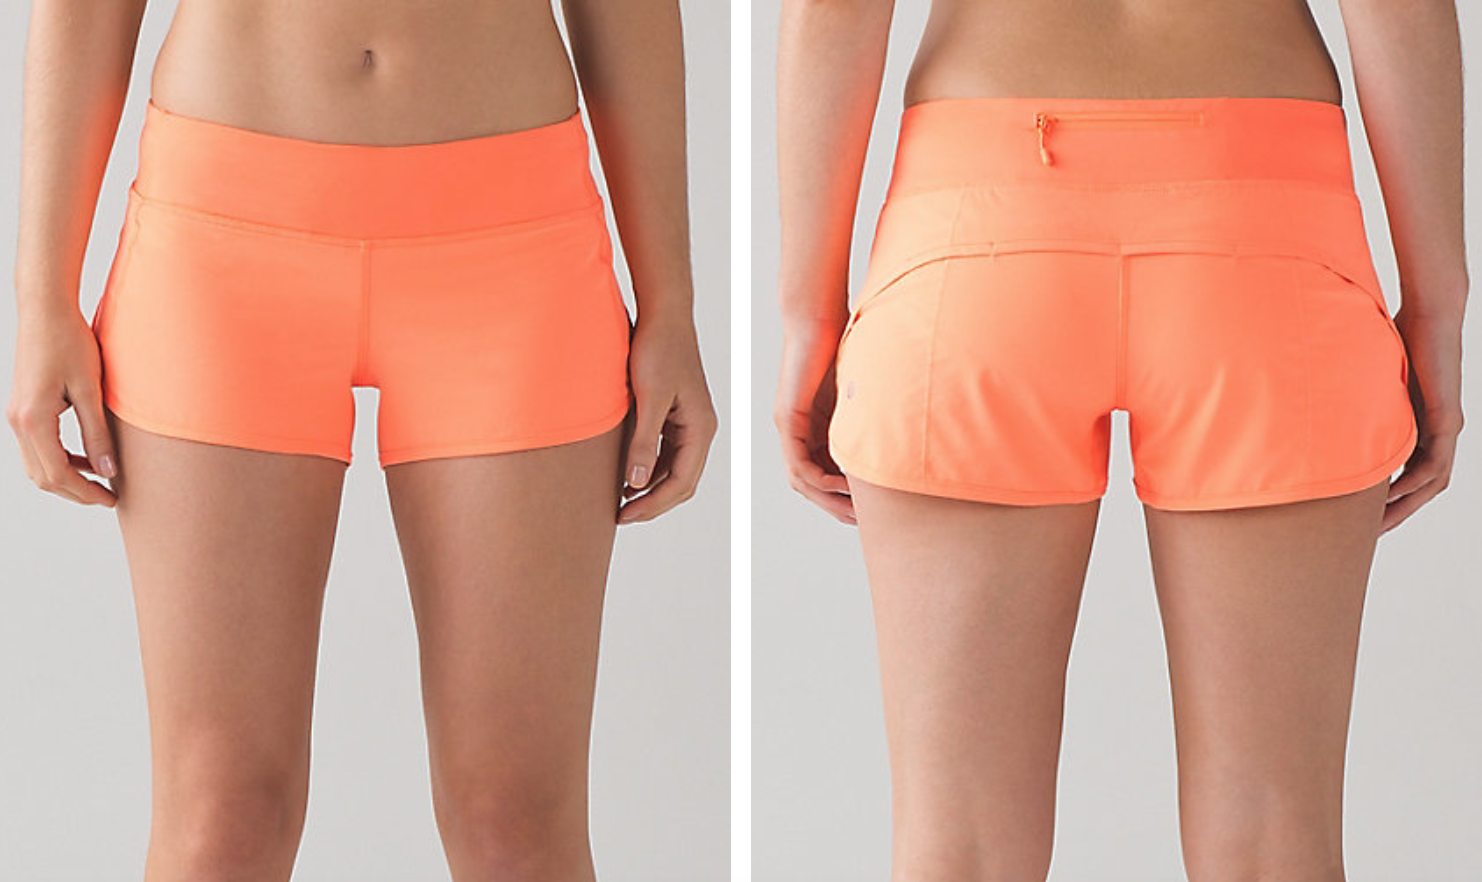 https://api.shopstyle.com/action/apiVisitRetailer?url=https%3A%2F%2Fshop.lululemon.com%2Fp%2Fwomen-shorts%2FRun-Speed-Short-32138%2F_%2Fprod3040002%3Frcnt%3D0%26N%3D809%26cnt%3D29%26color%3DLW7ACES_027843&site=www.shopstyle.ca&pid=uid6784-25288972-7